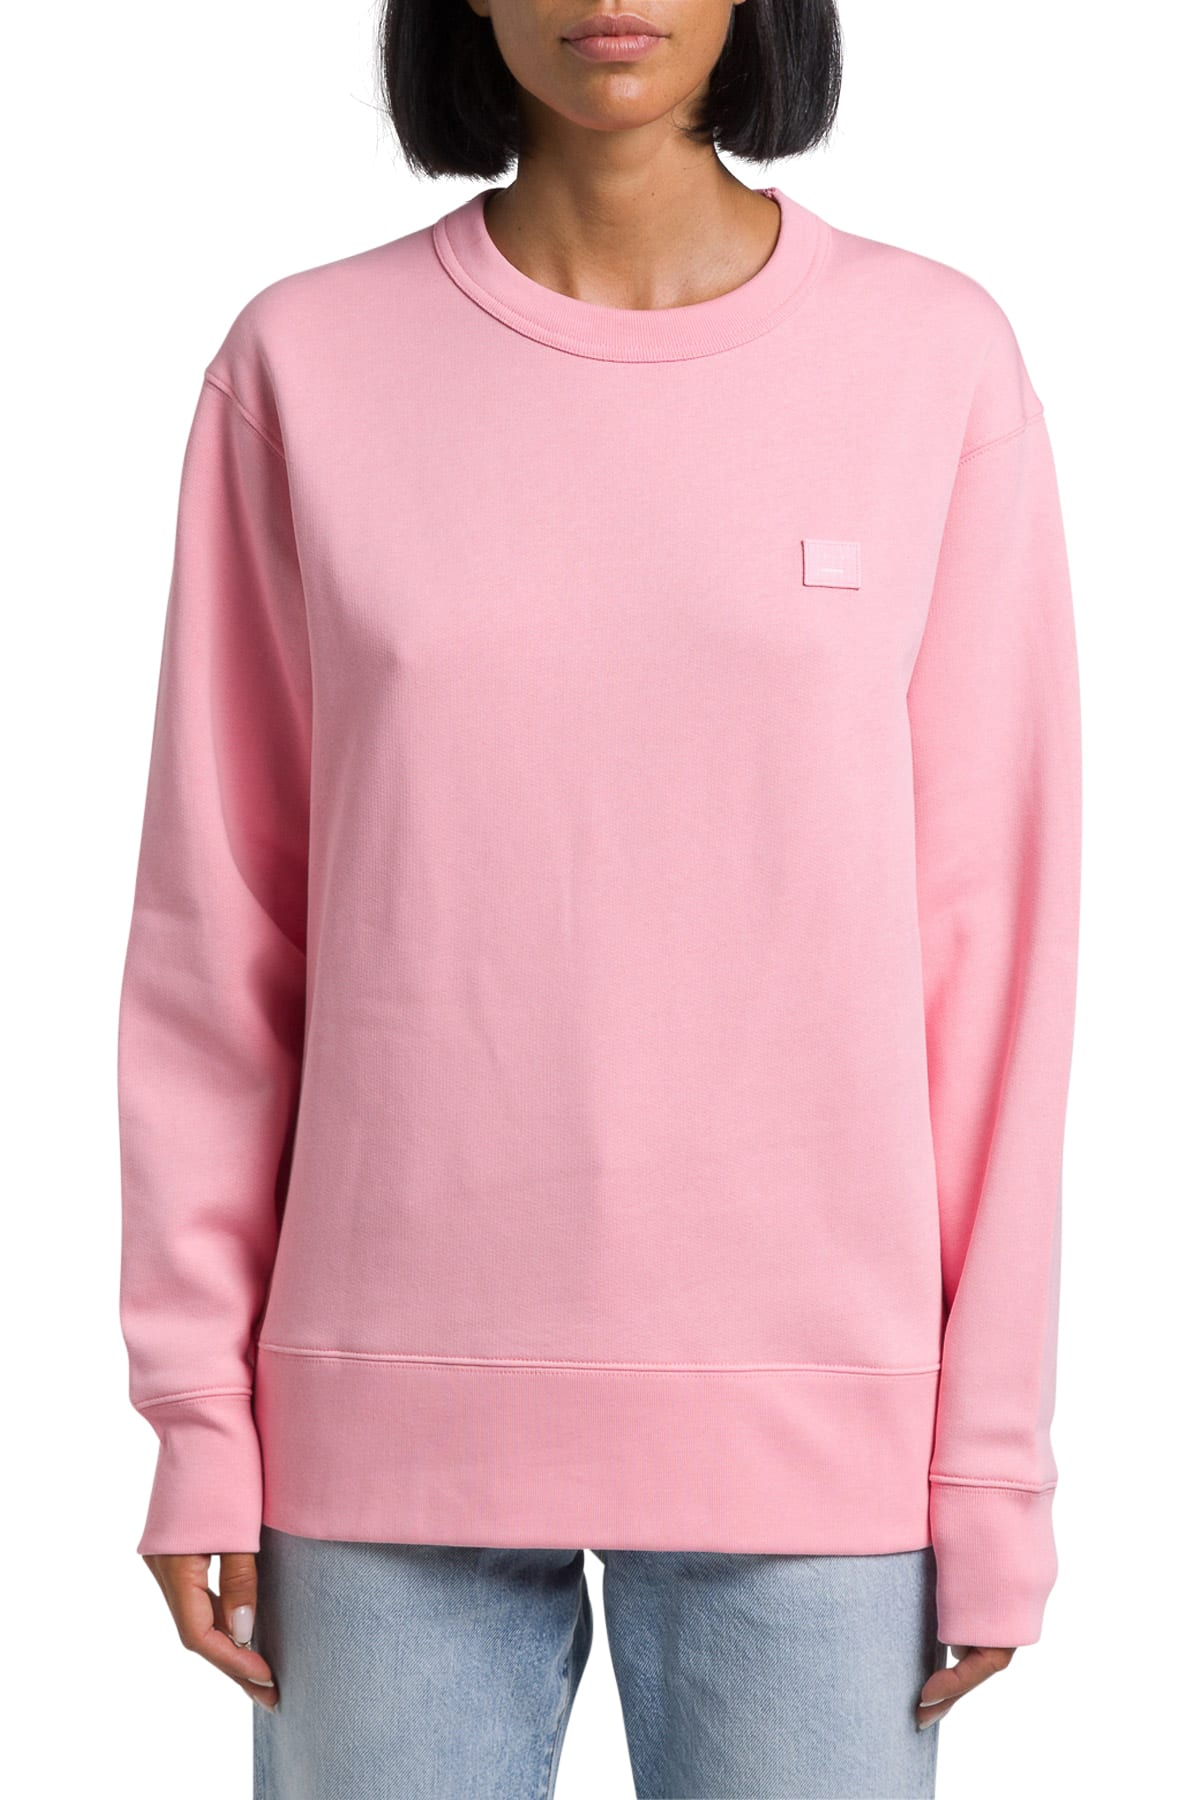 in vendita c16ef 9f2df Acne Studios Fairview Face Felpa Girocollo A Maniche Lunghe - Unisex  Regular Fit Brushed Fleece Long Sleeved Crew Neck Sweatshirt With  Embroidered Fac